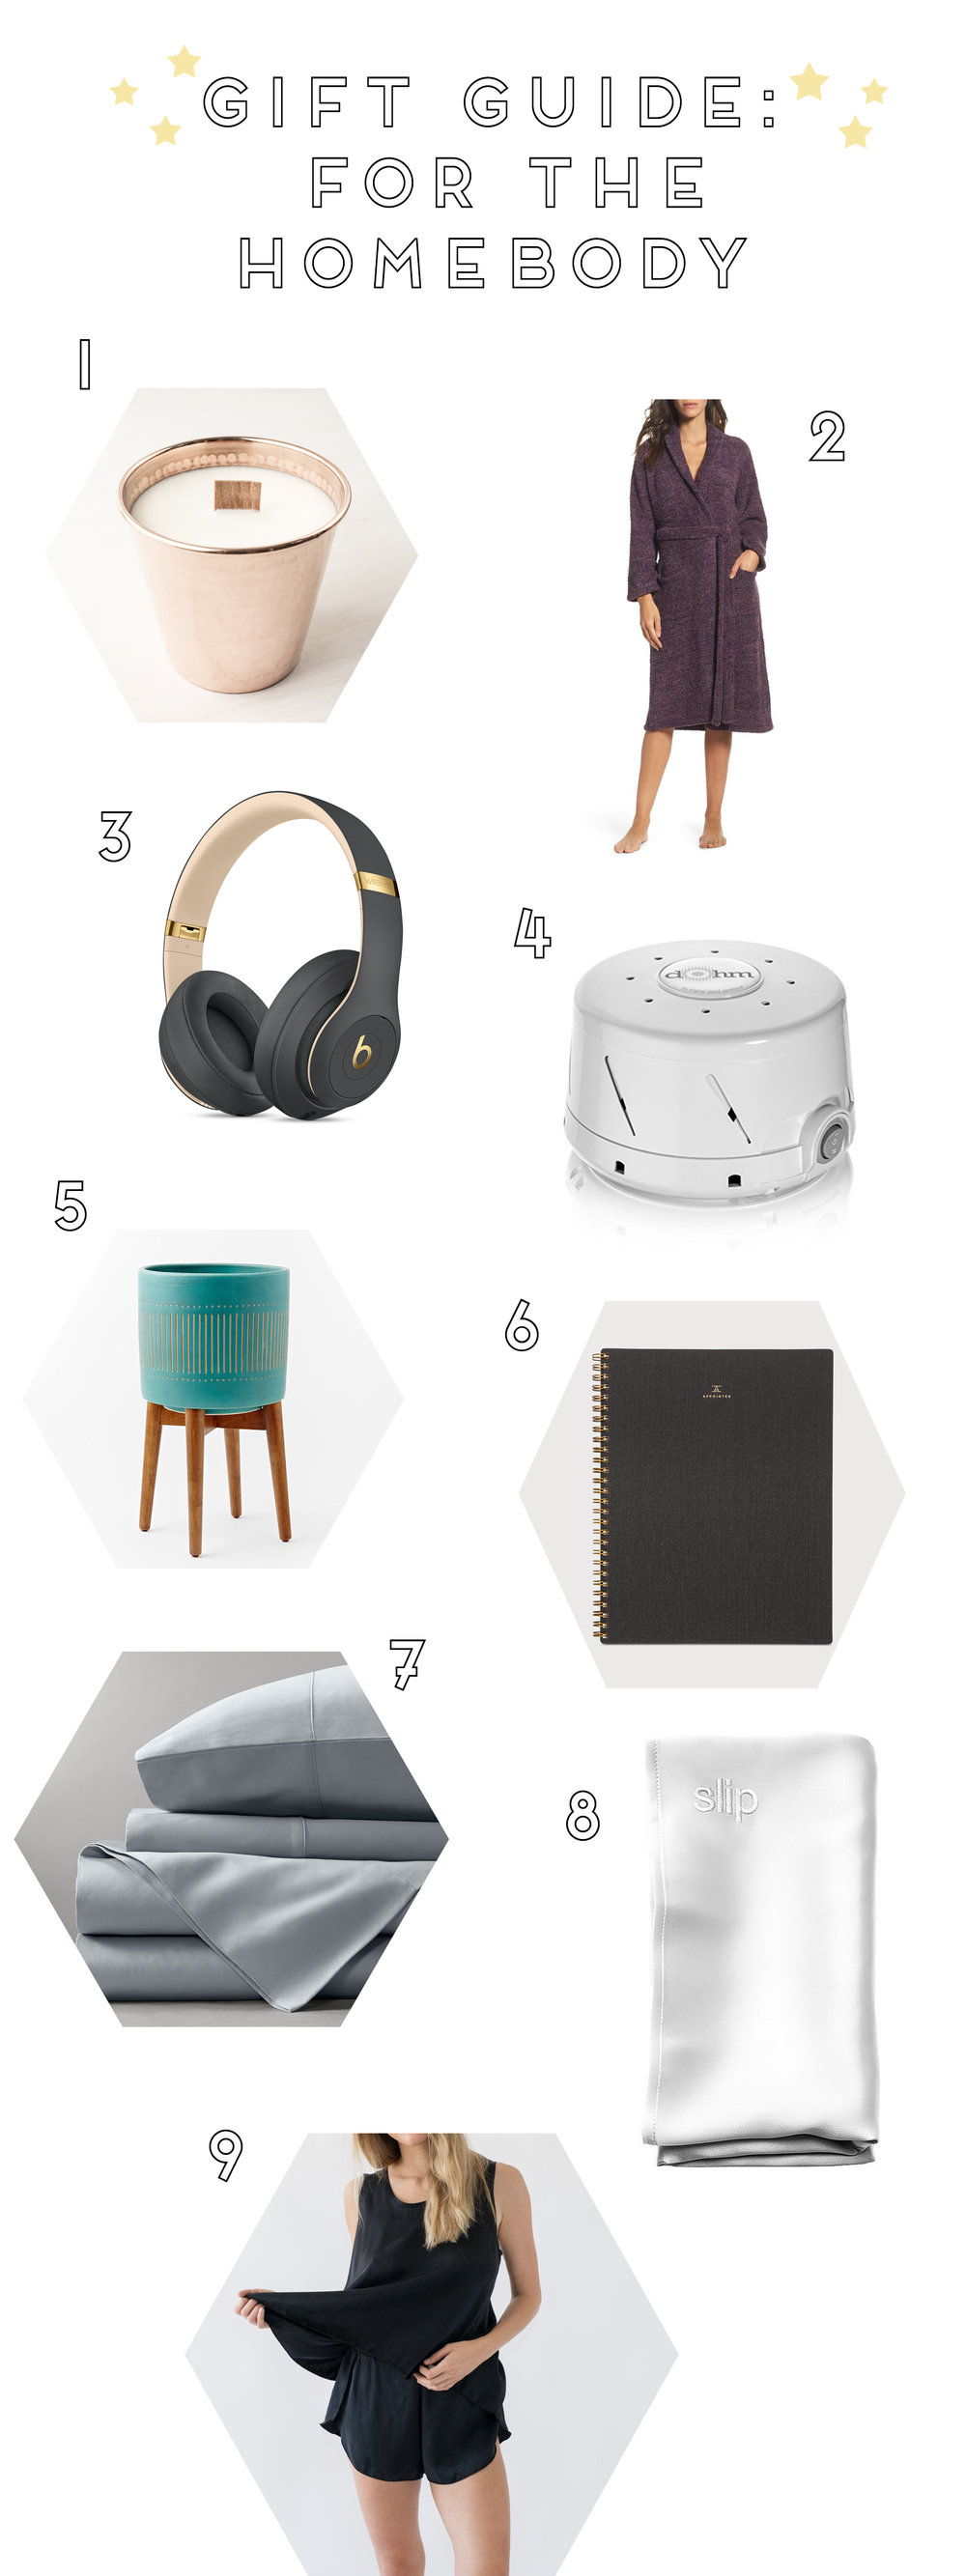 giftguide_homebody